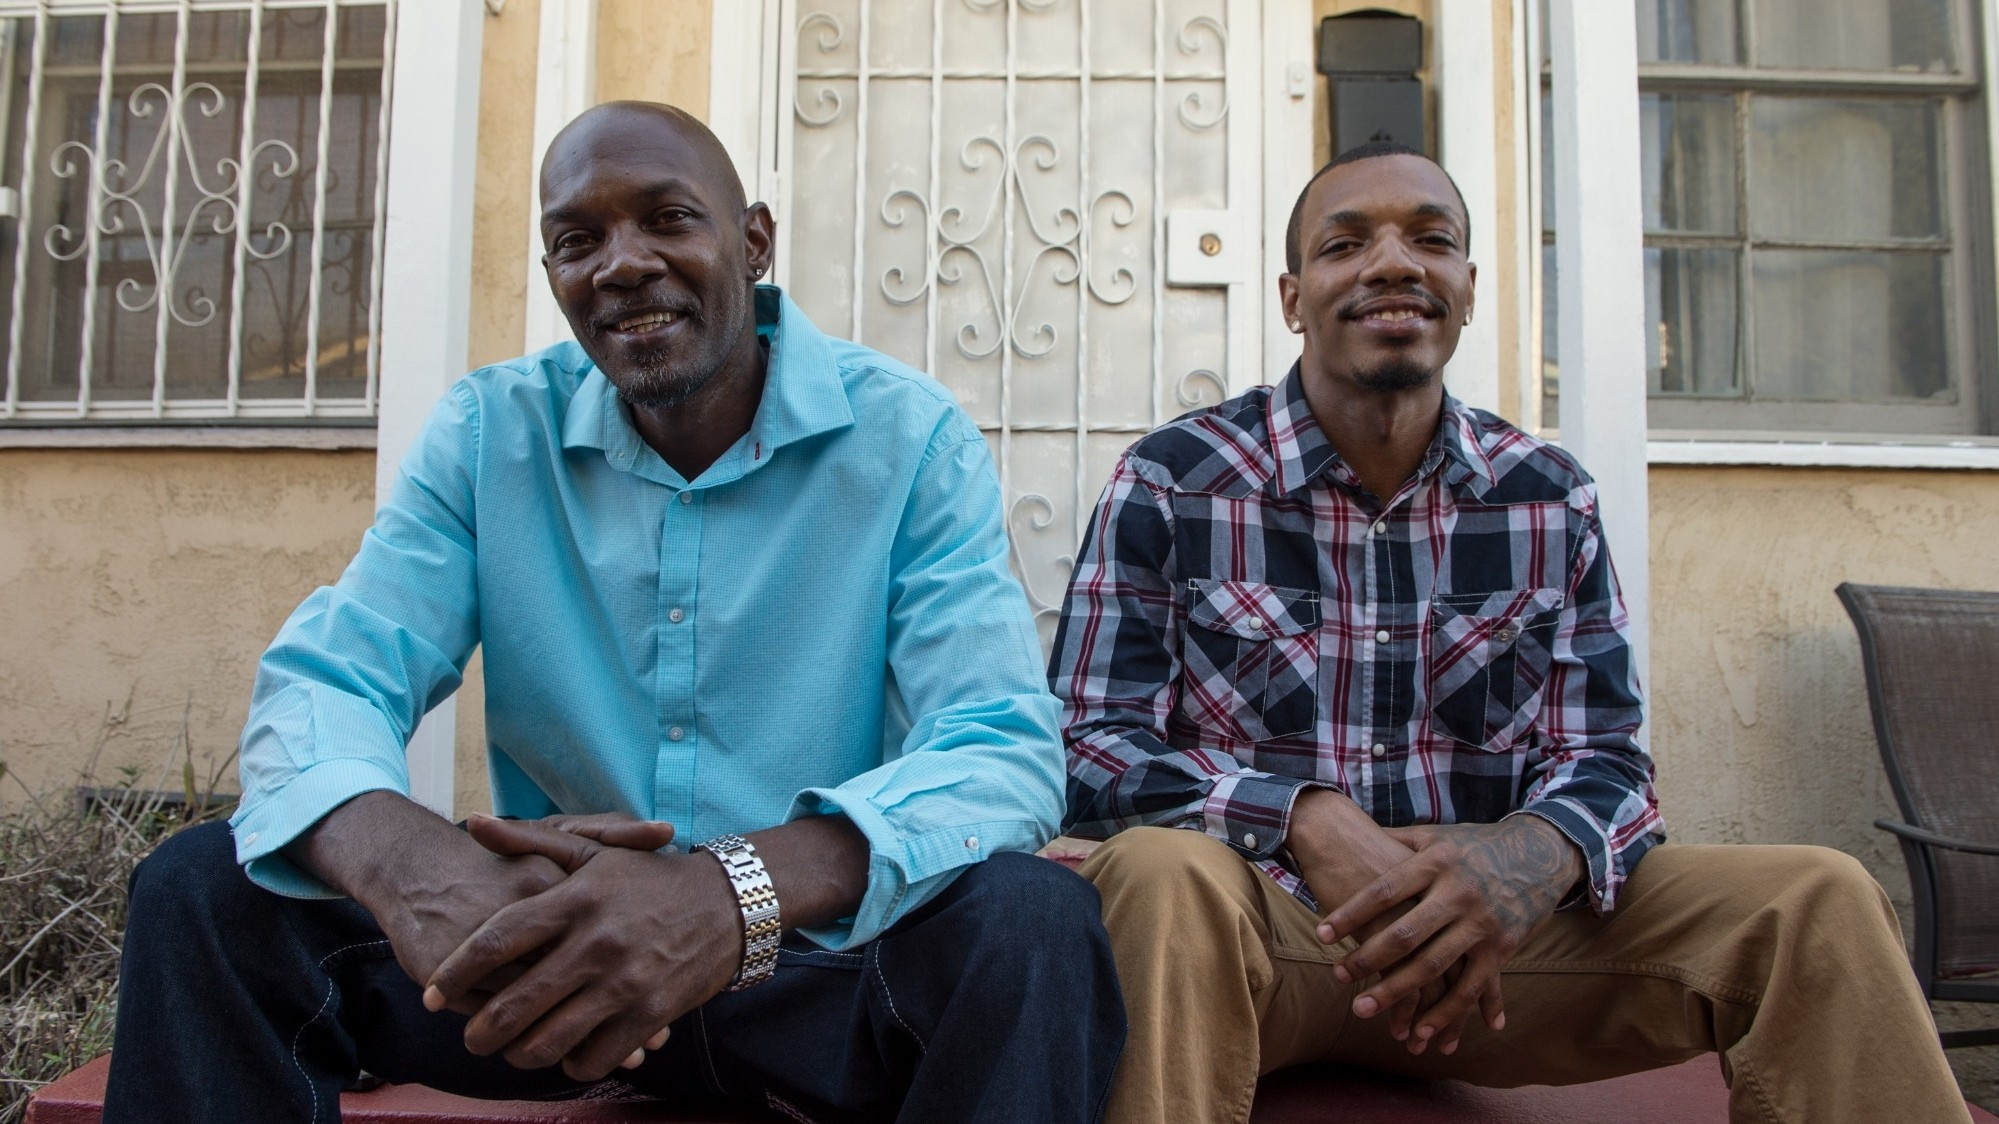 Eric Holmes and son Justin at home in South Central, Los Angeles, photo by Diane Baldwin/RAND Corporation